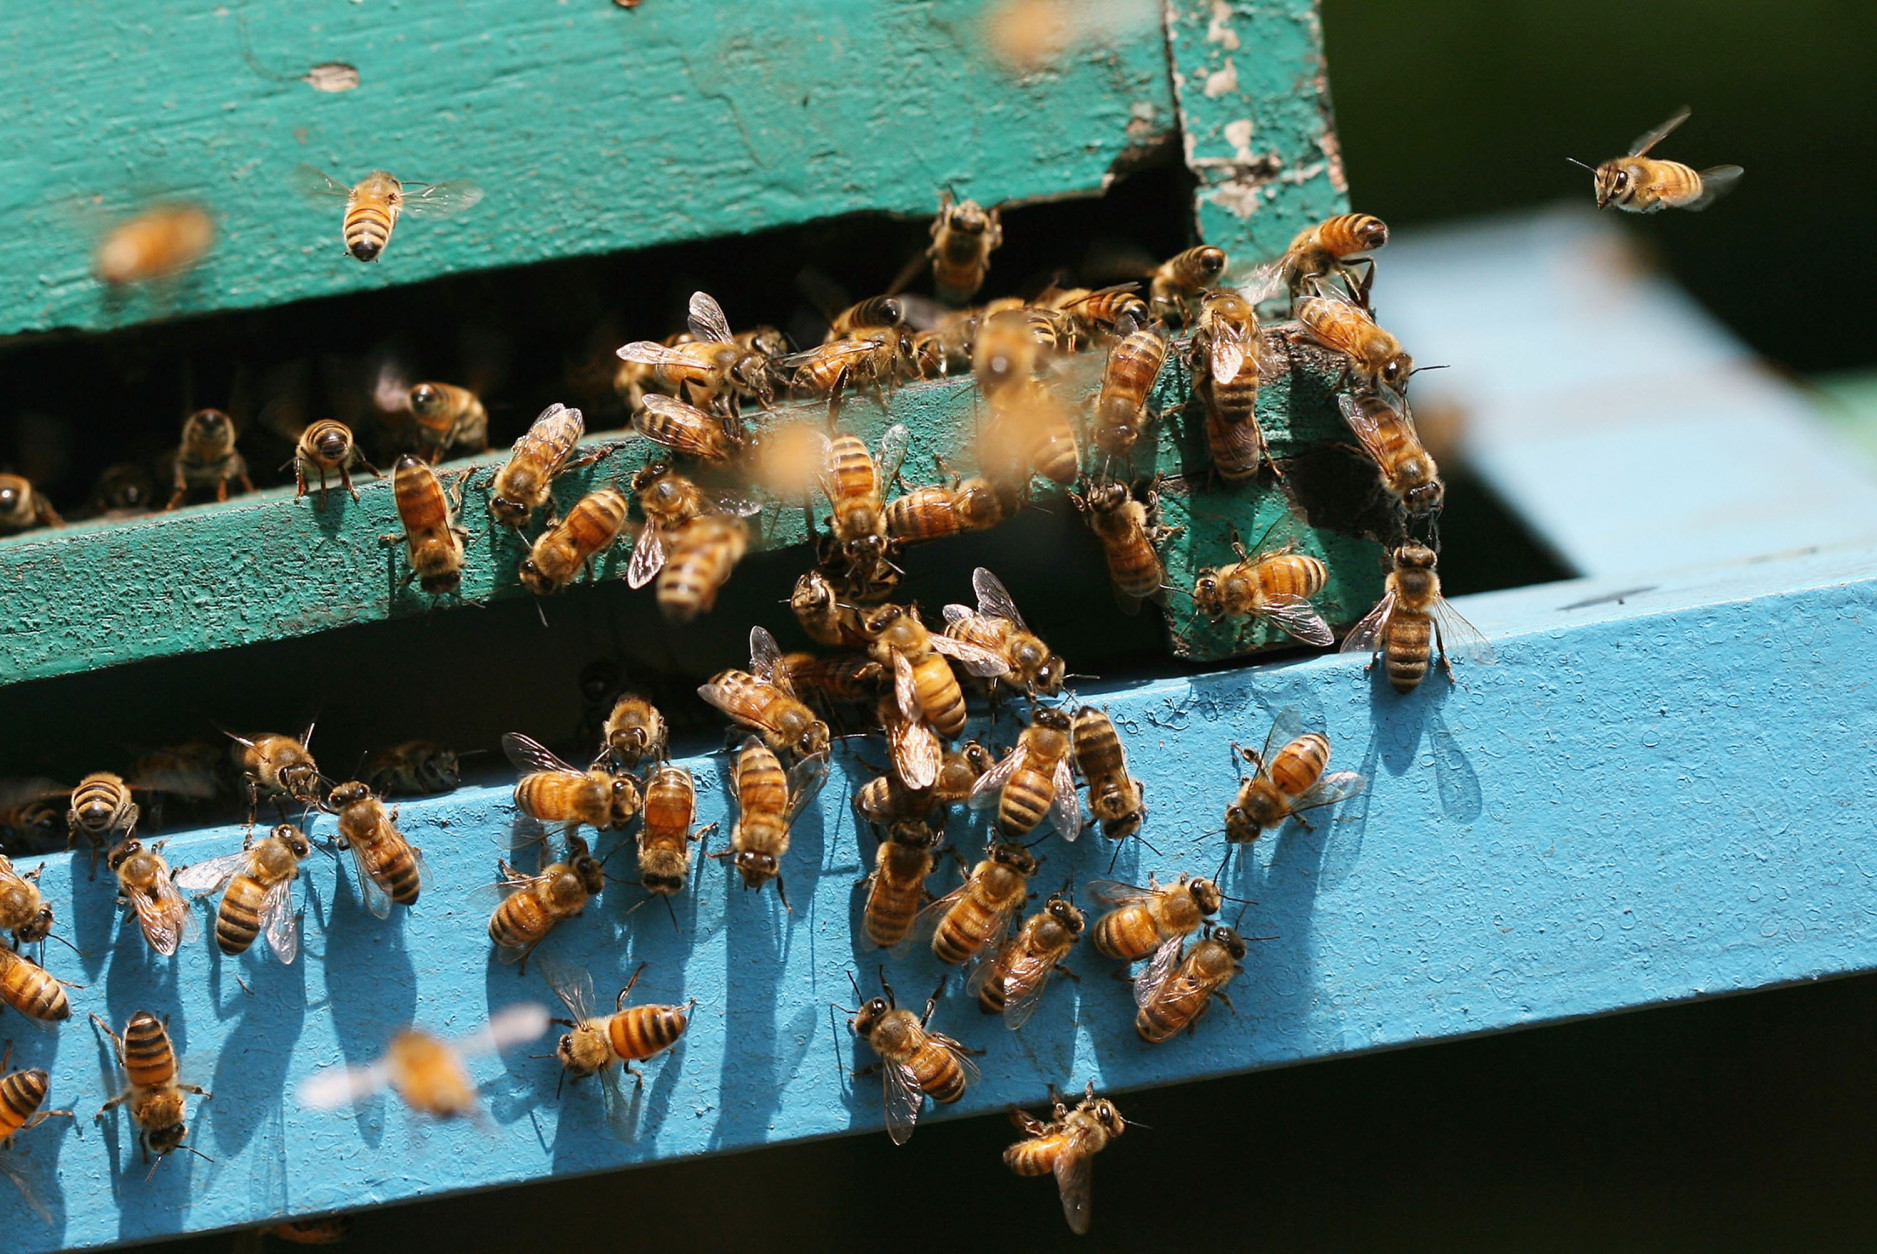 Garden editor Mike McGrath explains how to differentiate between the honeybee (shown) and the more troublesome yellow jacket. (Getty Images/Dimas Ardian)